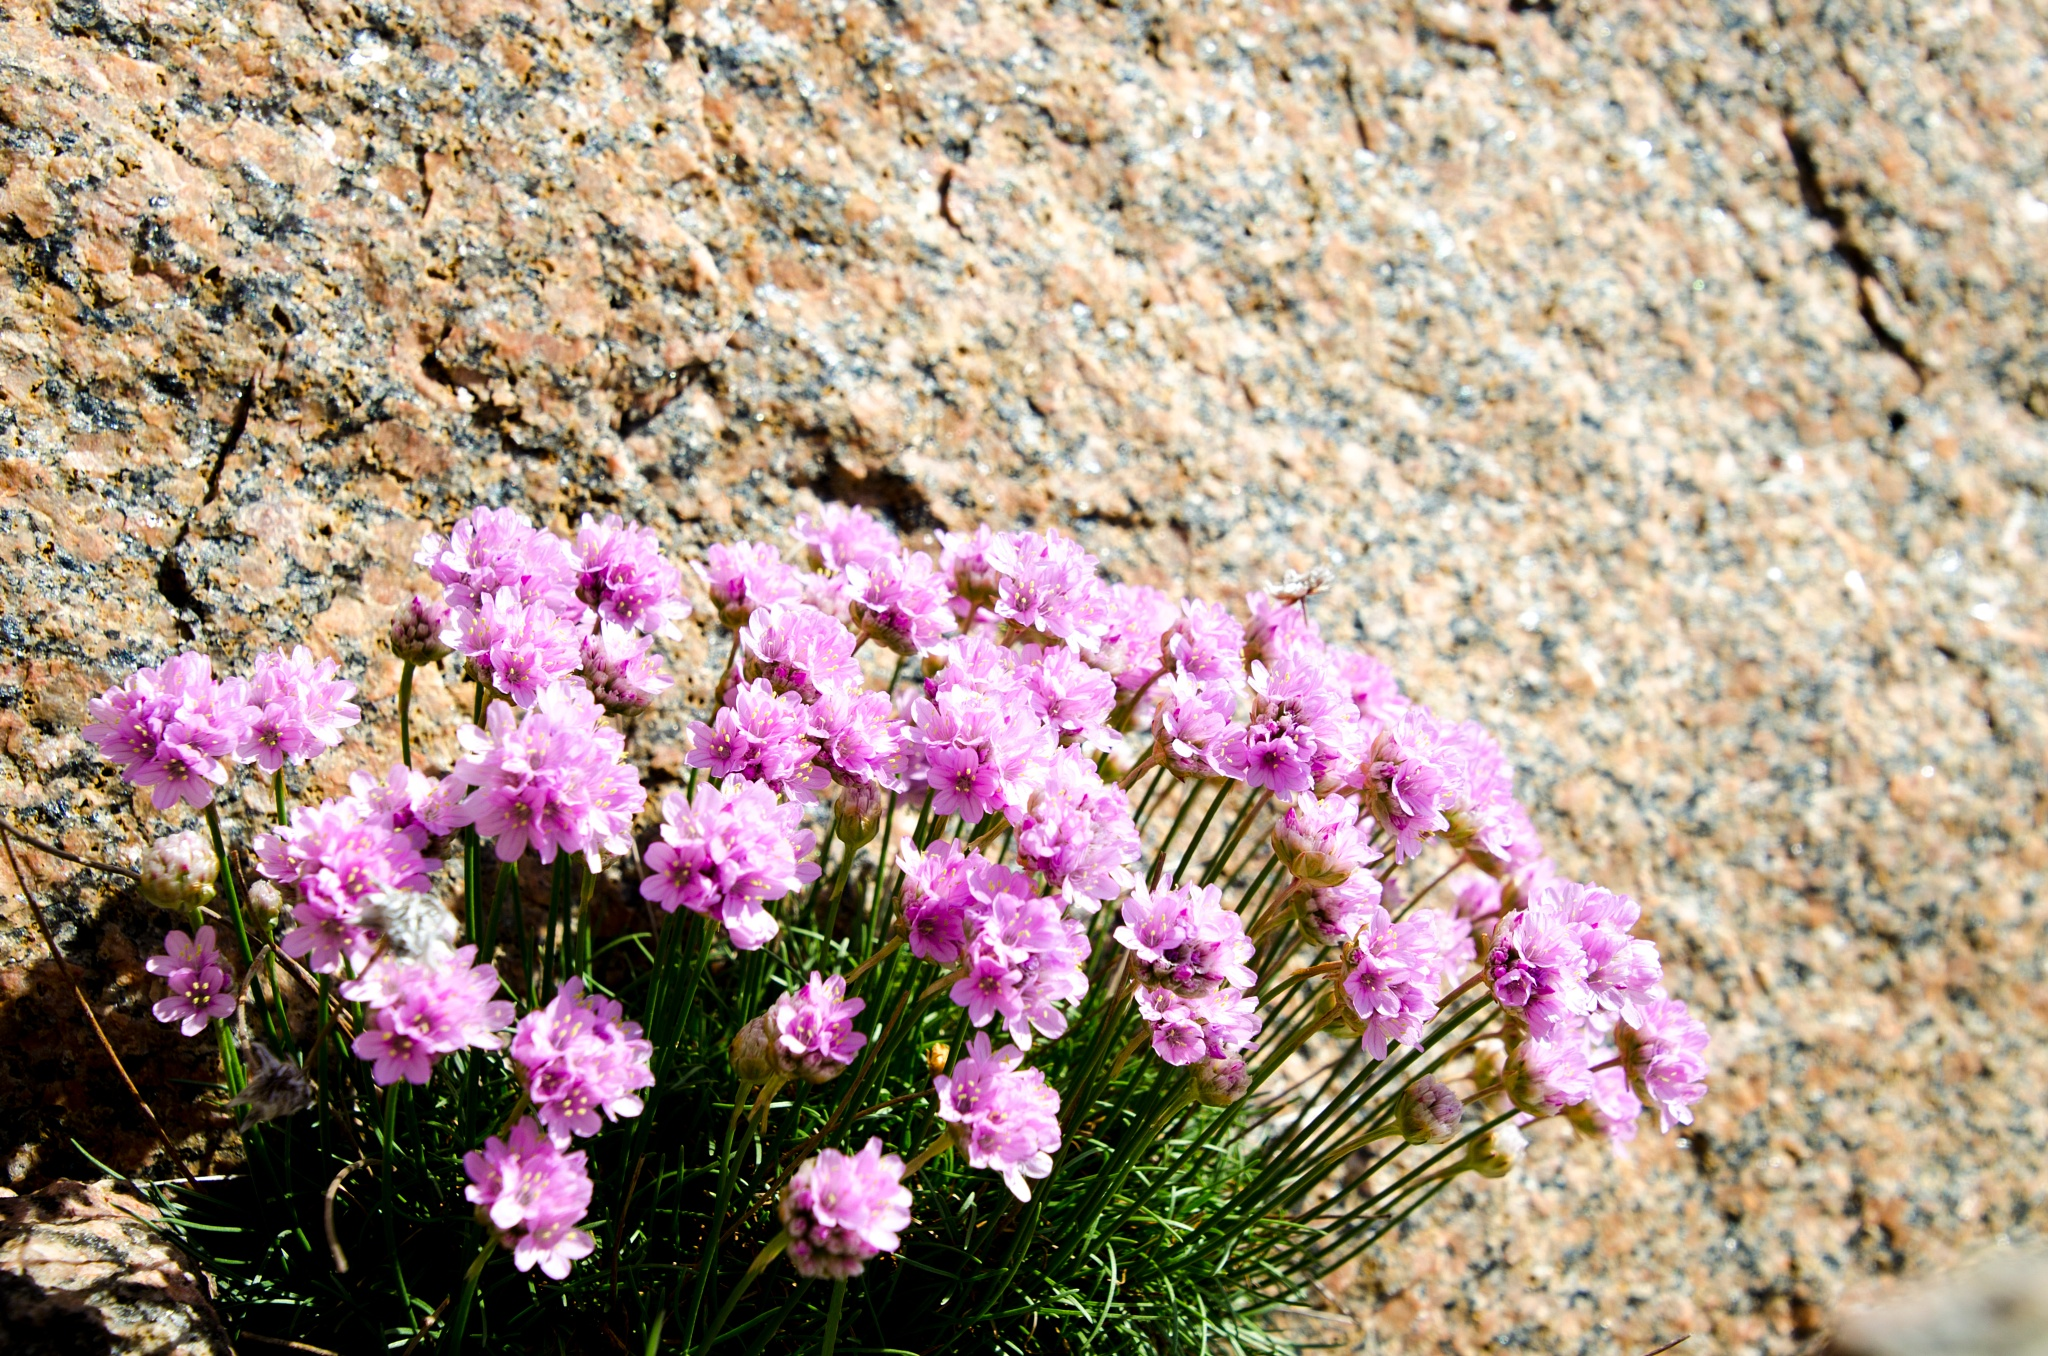 Flowers growing on the rocks by Johnny Lythell